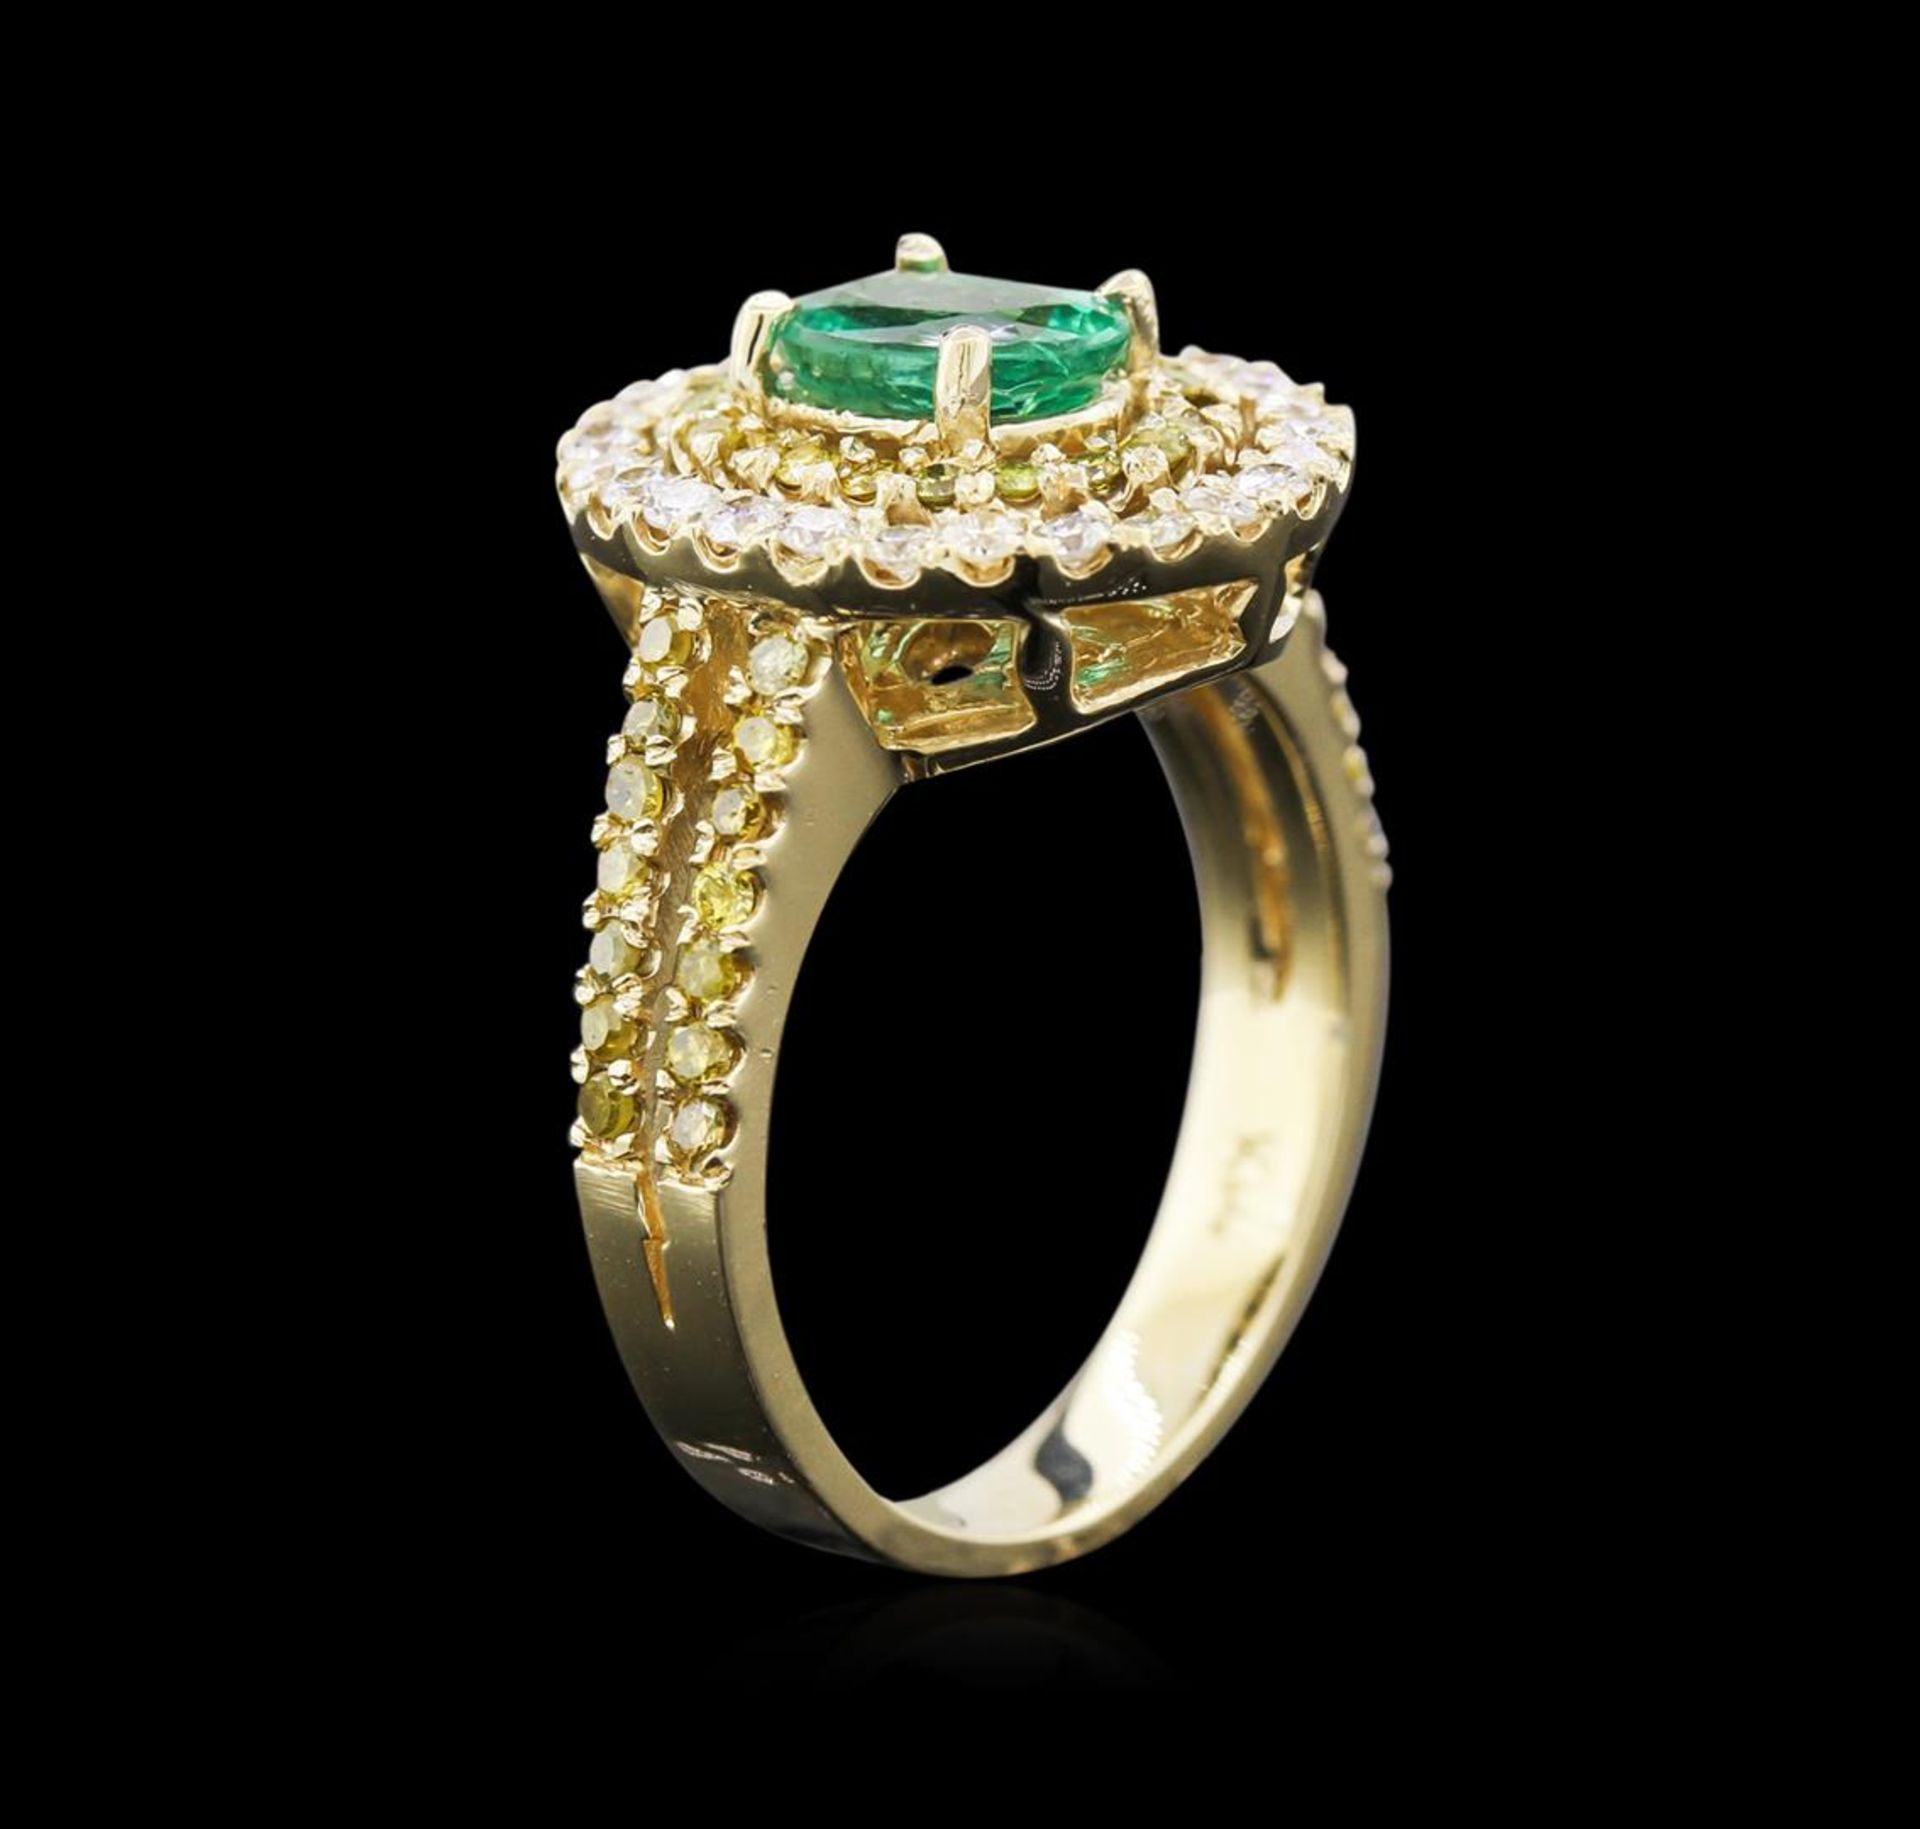 0.88 ctw Emerald and Diamond Ring - 14KT Yellow Gold - Image 3 of 3